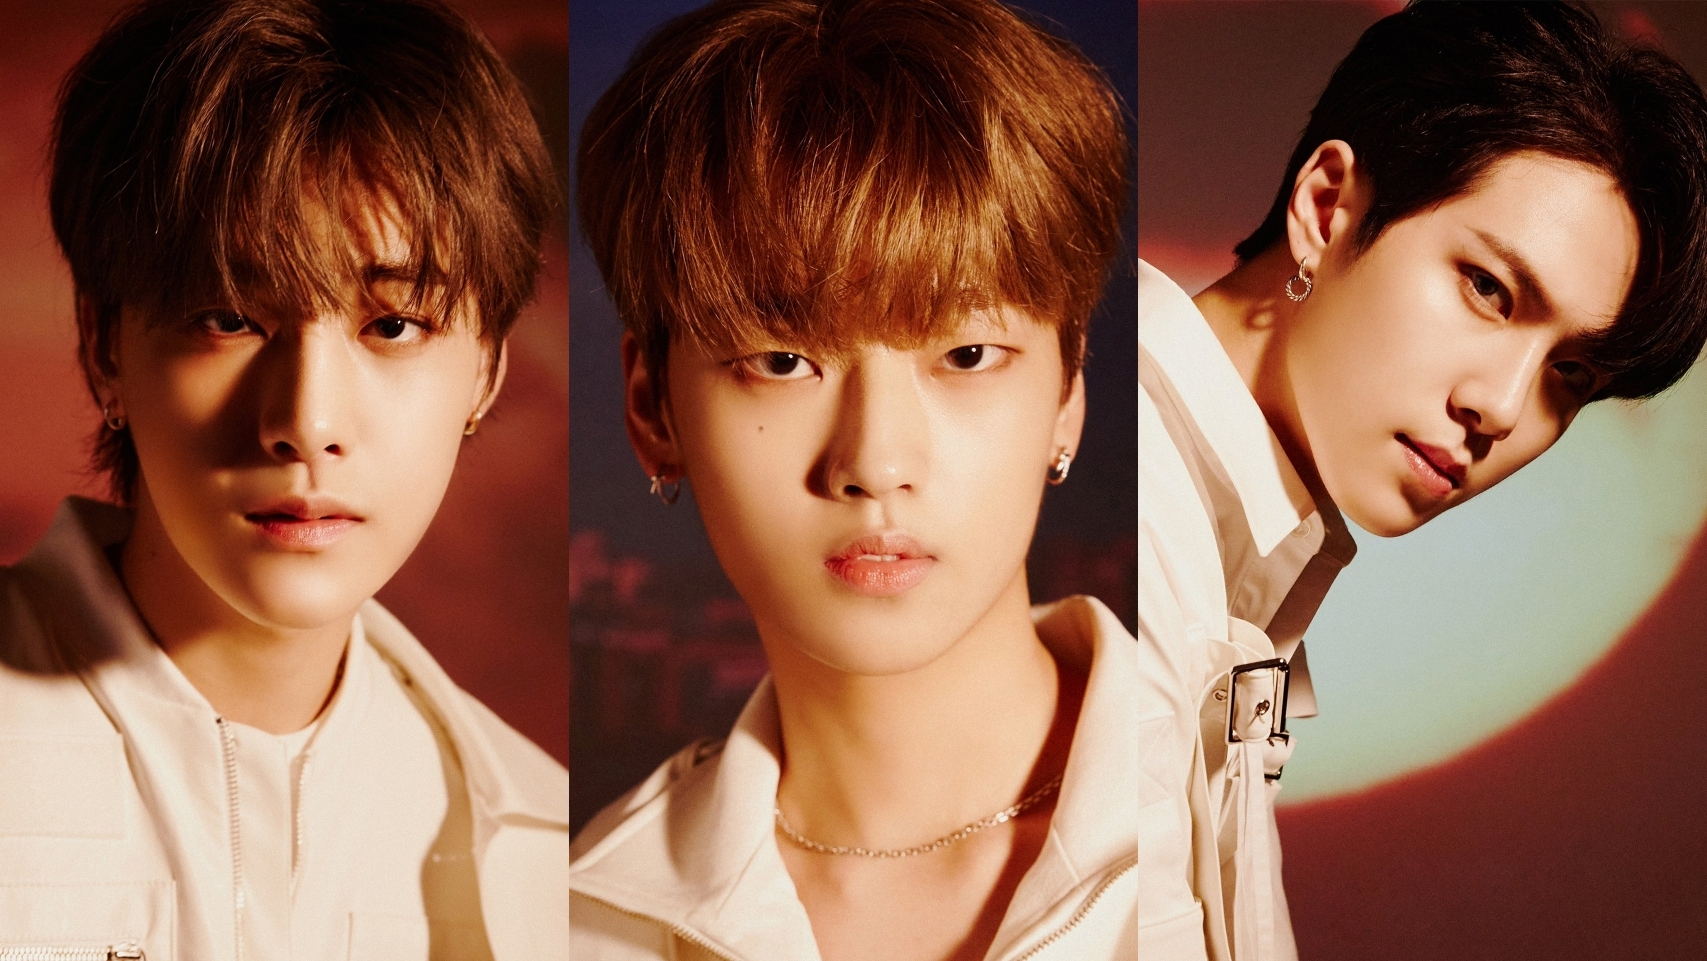 WEi's Donghan, Yongha, and Seokhwa Looks Dazzling in 'Identity: First Sight' Debut Teaser